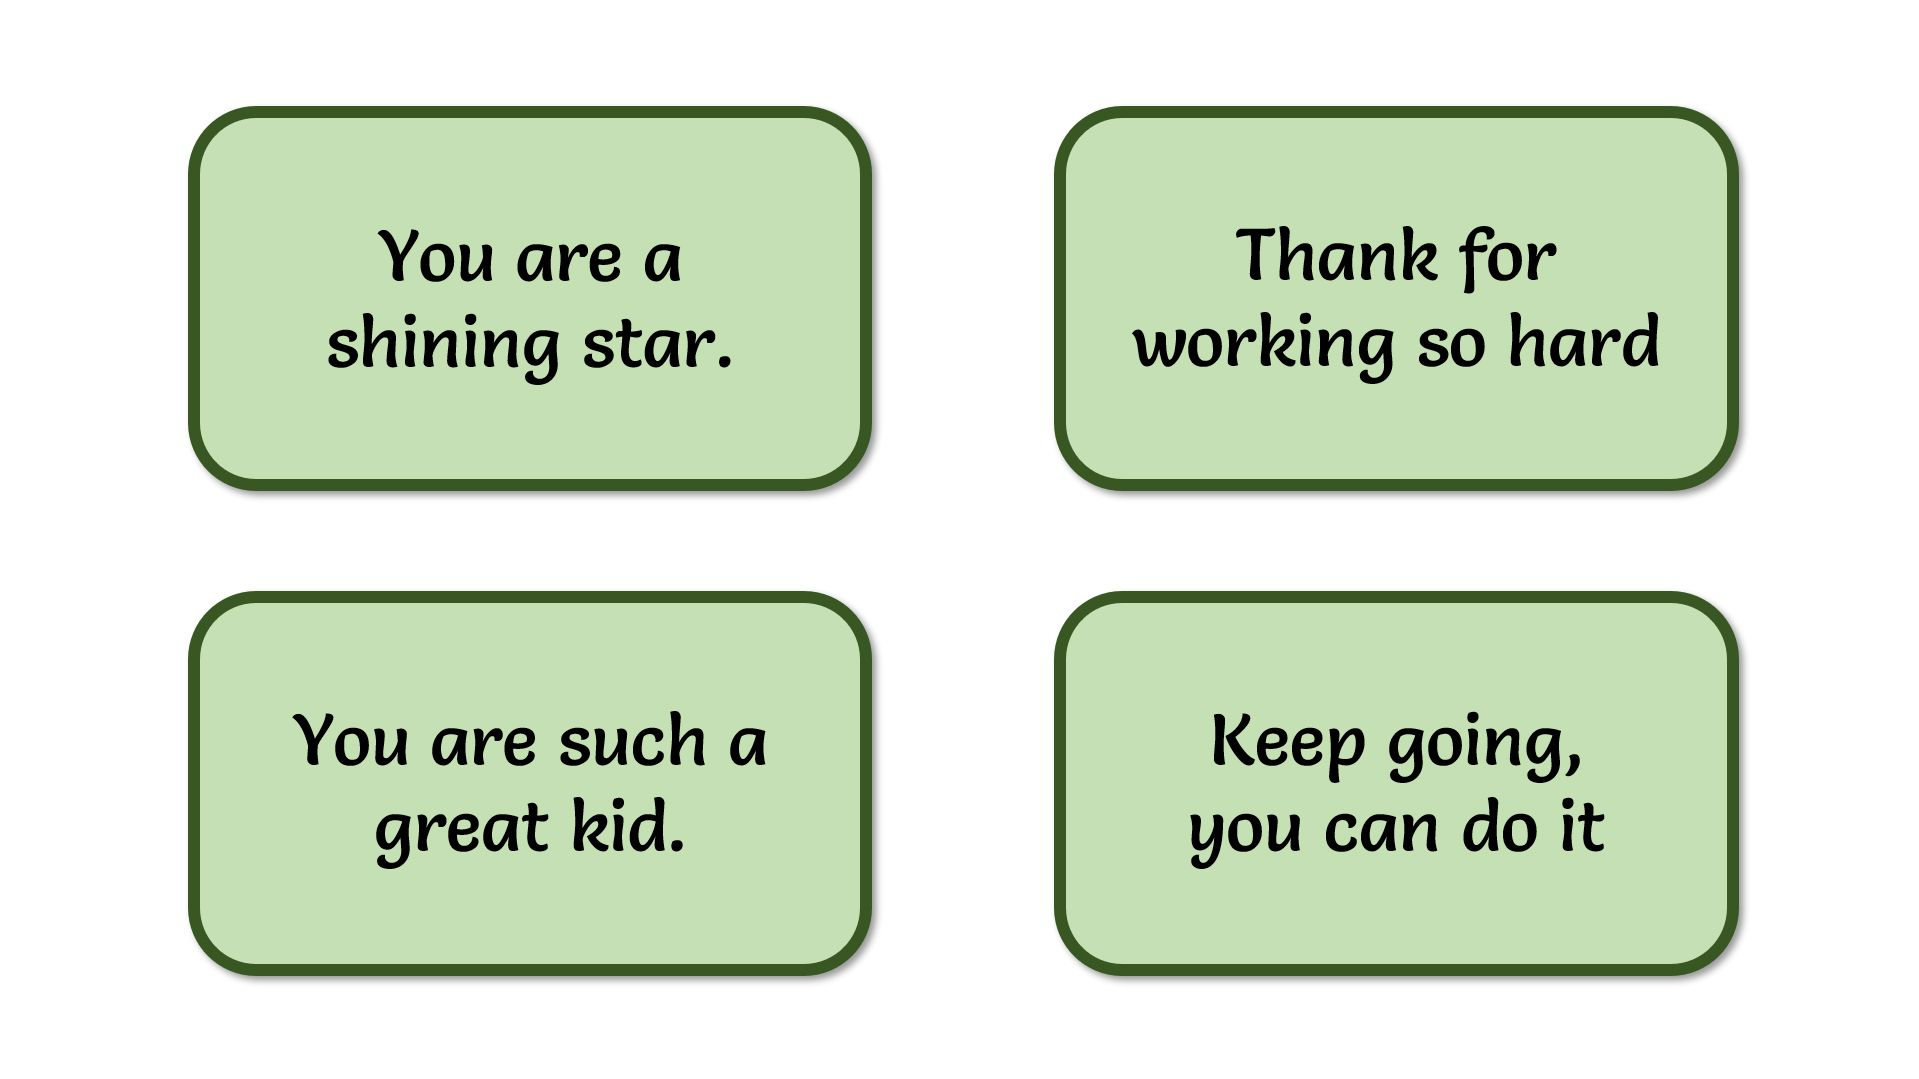 100 Positive And Encouraging Words For Kids In 2020 Words Of Encouragement For Kids Words Of Encouragement Words [ 1079 x 1919 Pixel ]